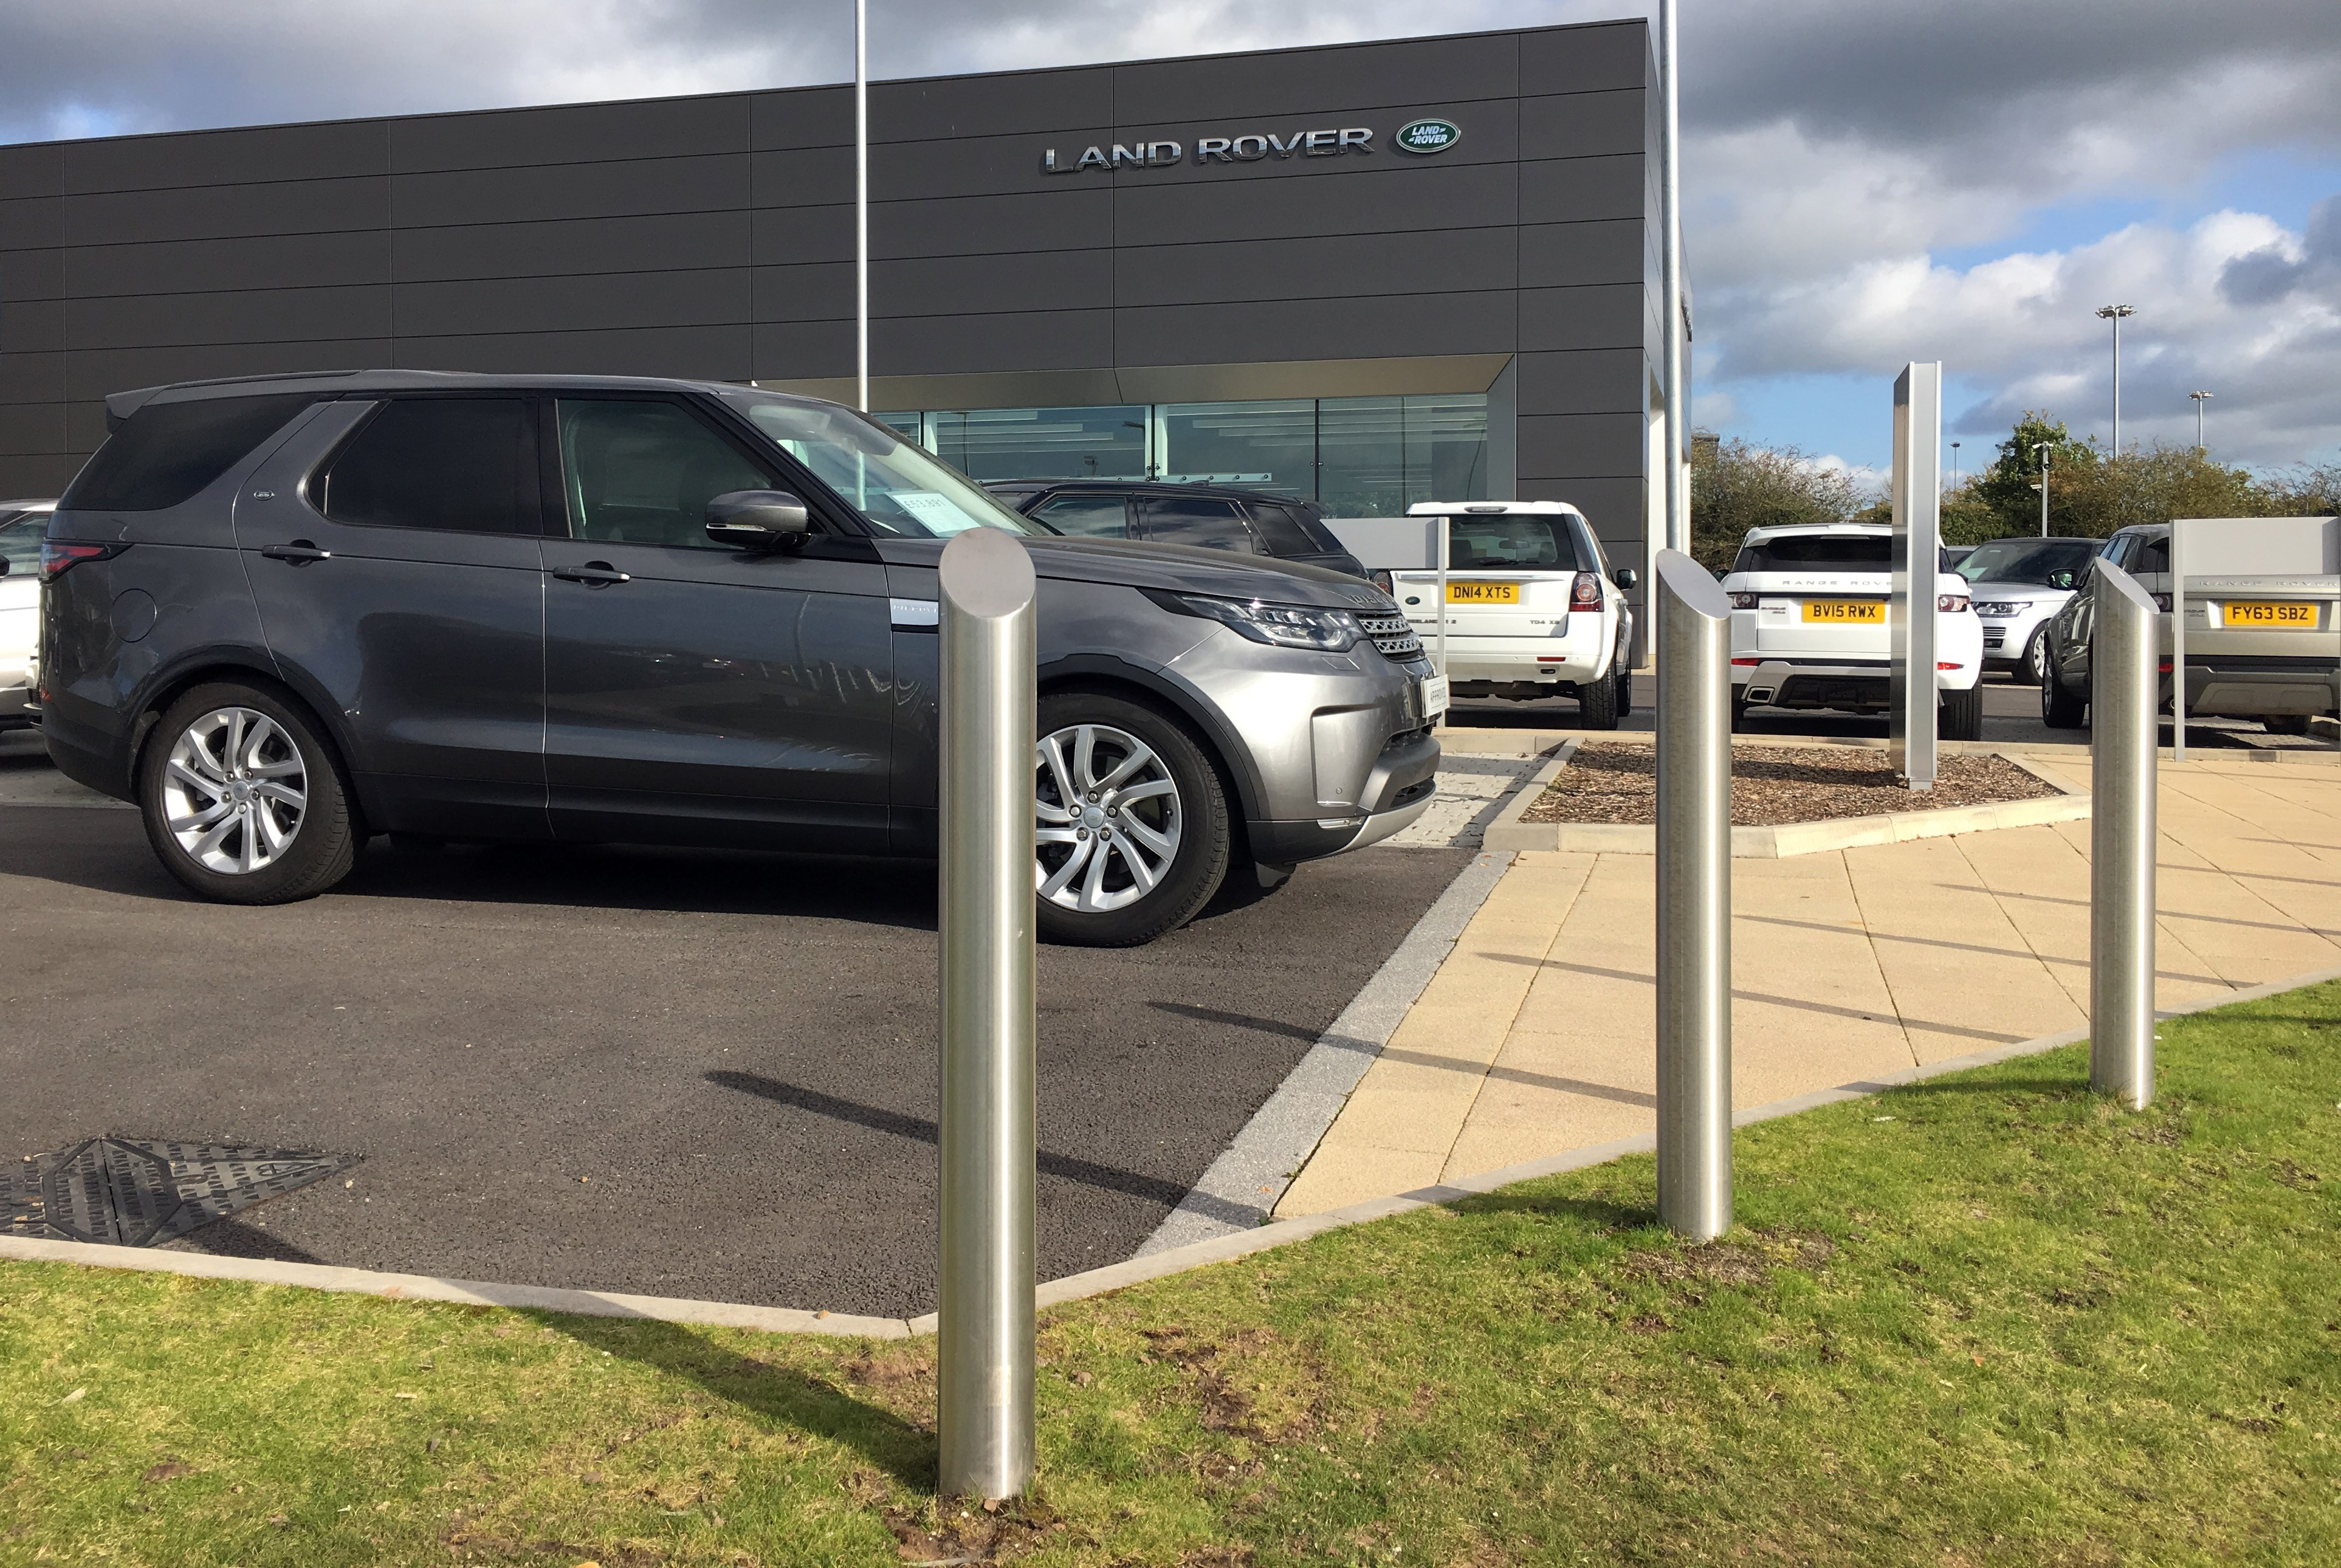 Land Rover Stafford gallery image